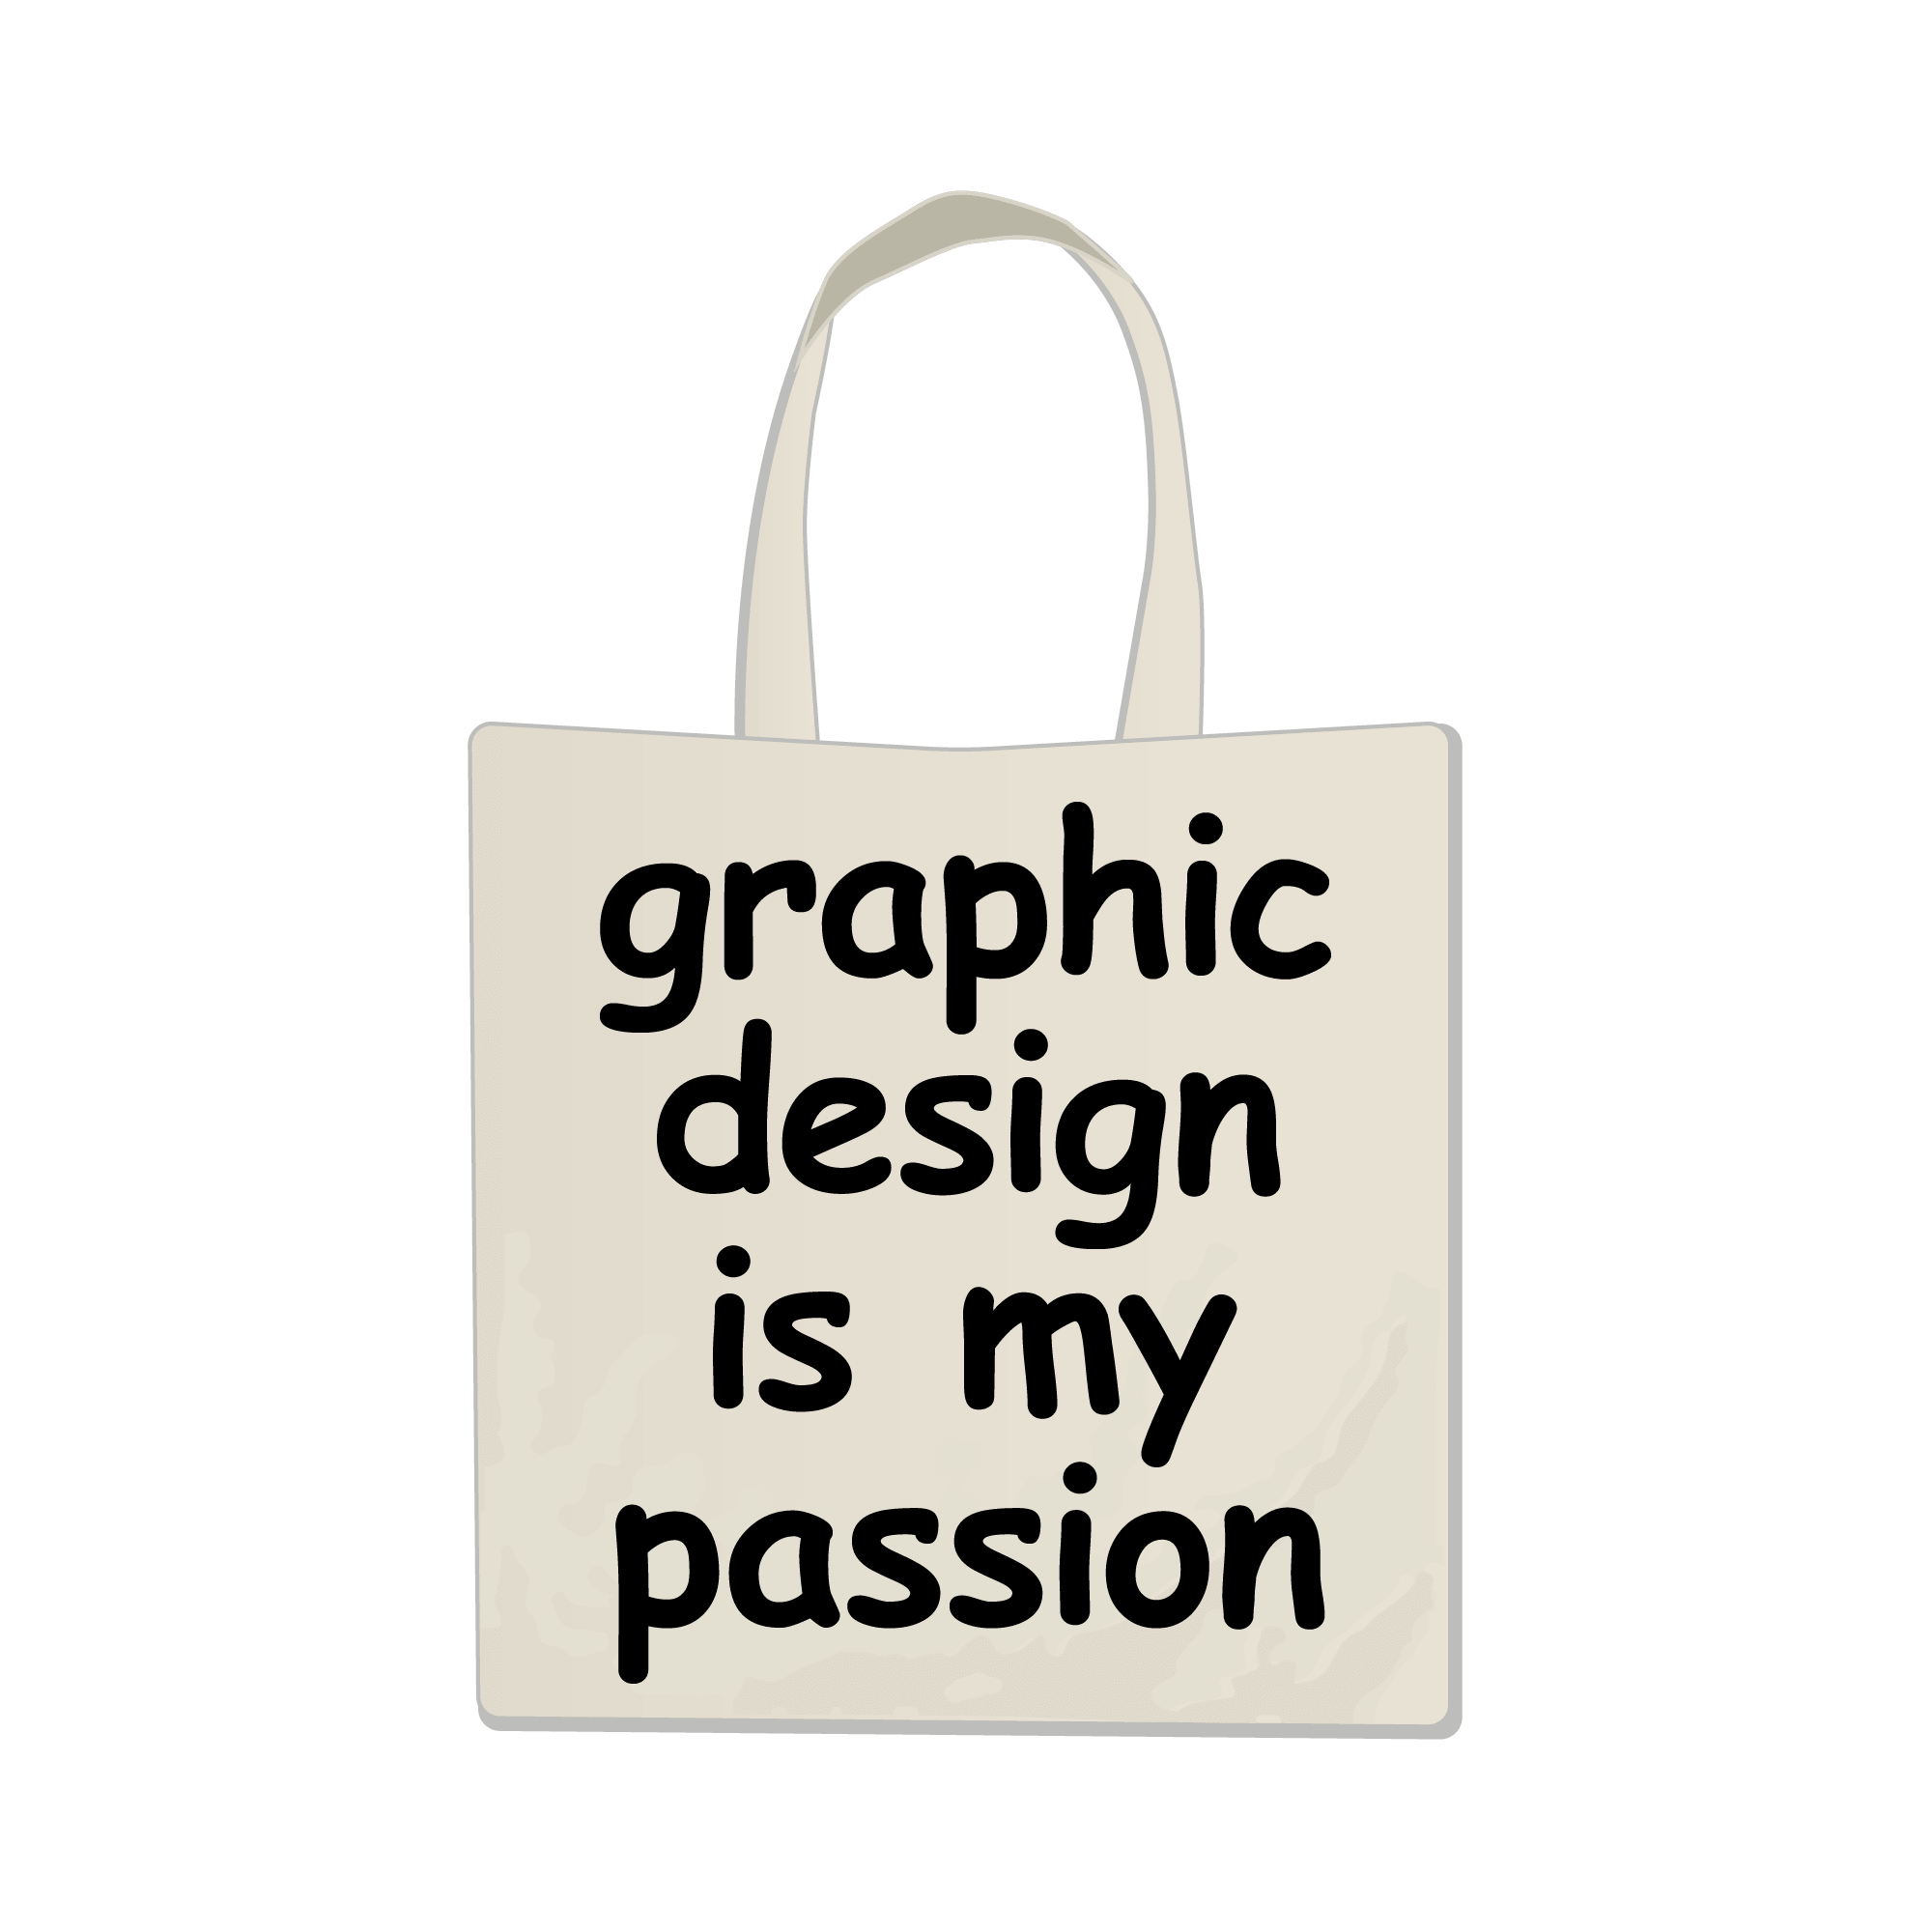 An emoji of a white tote bag with the words 'Graphic design is my passion' on it in Comic Sans font.